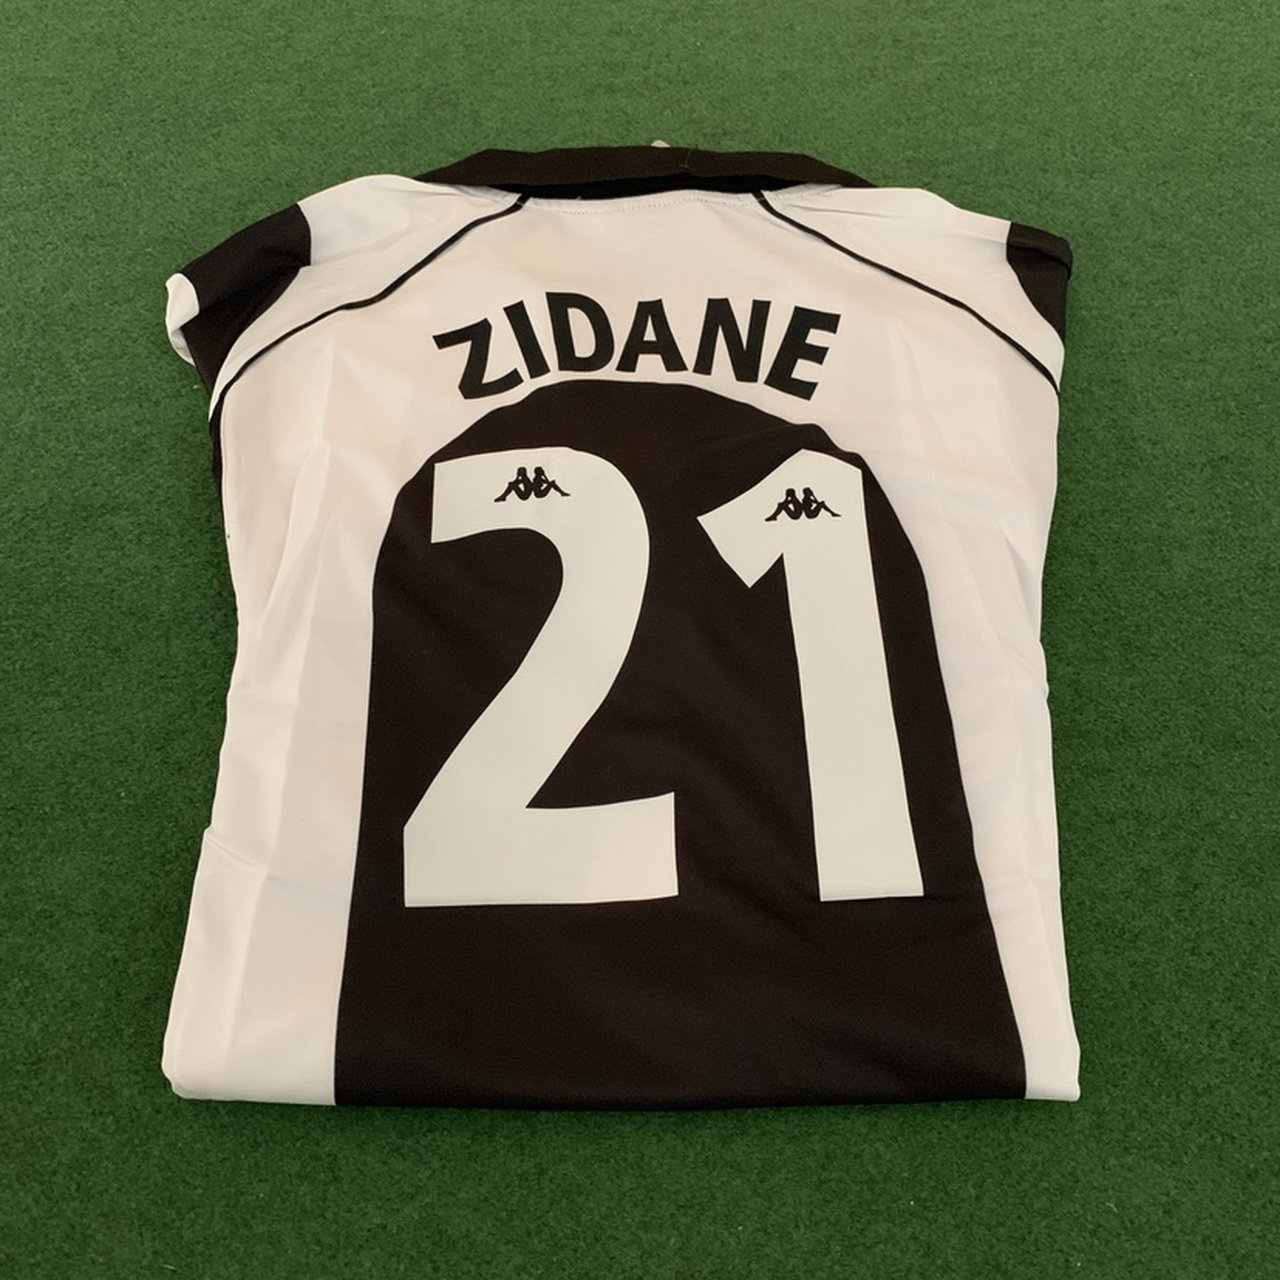 Retro Juventus Football Shirt Zidane 21 On The Depop